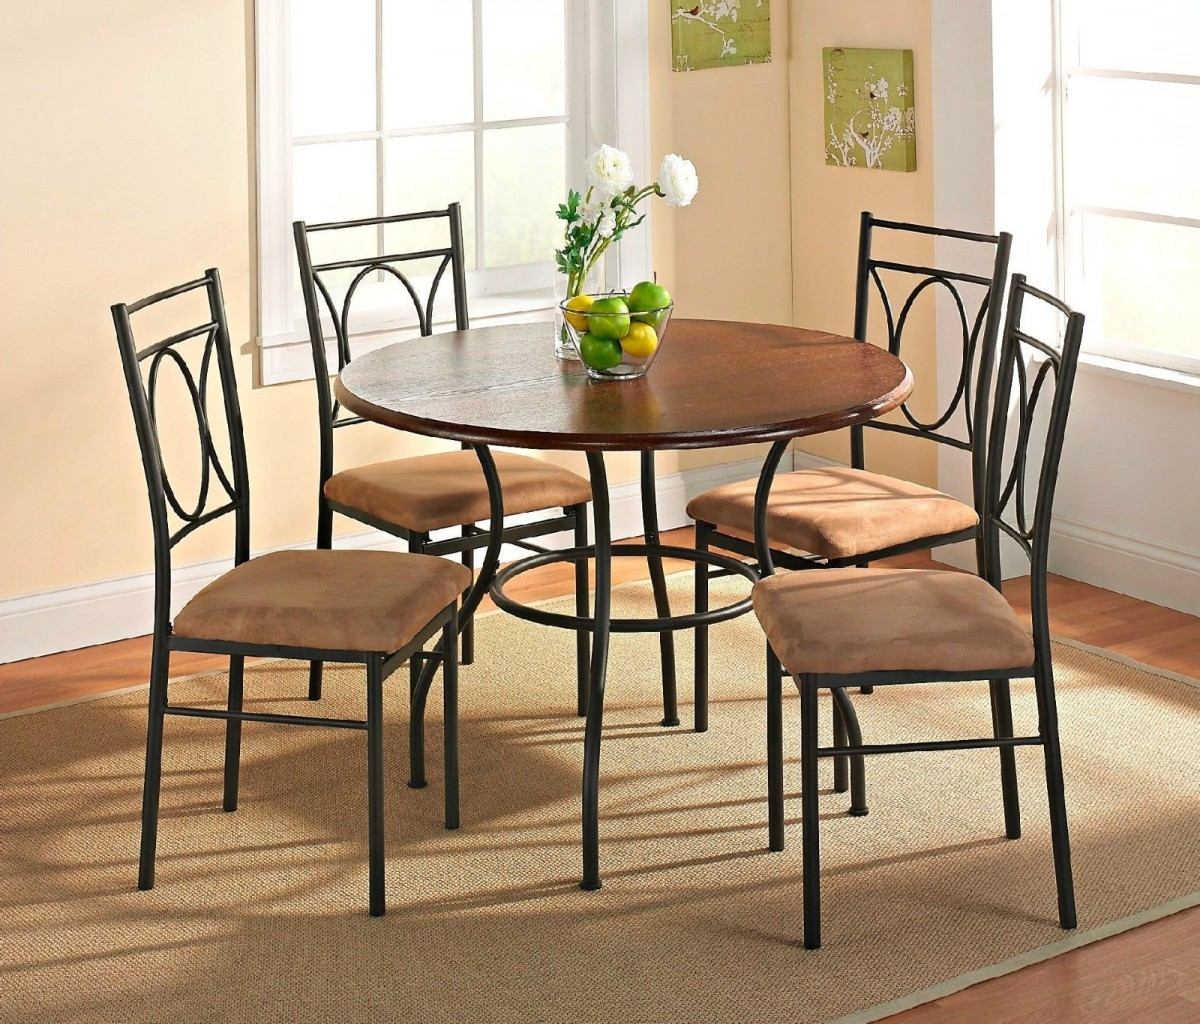 Fashionable Small Dining Tables And Chairs Intended For Small Room Design: Best Small Dining Room Table And Chairs Ashley (View 7 of 25)